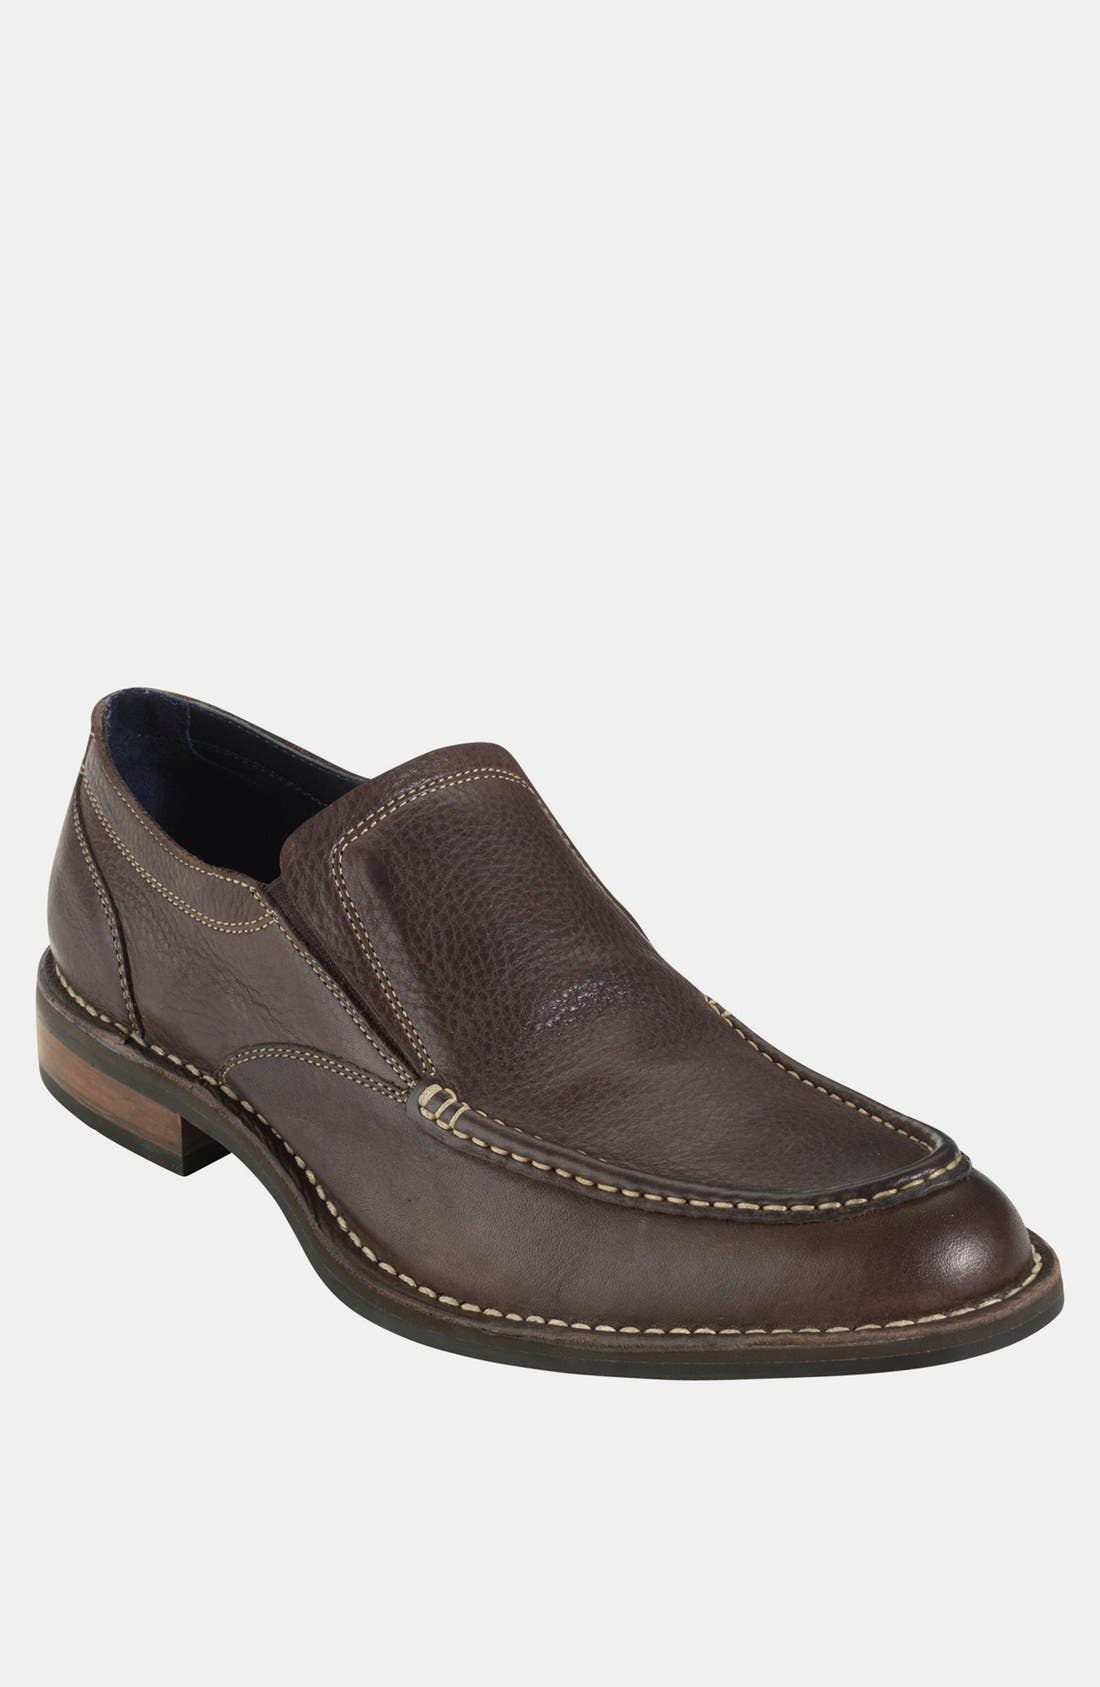 Main Image - Cole Haan 'Centre St.' Venetian Loafer